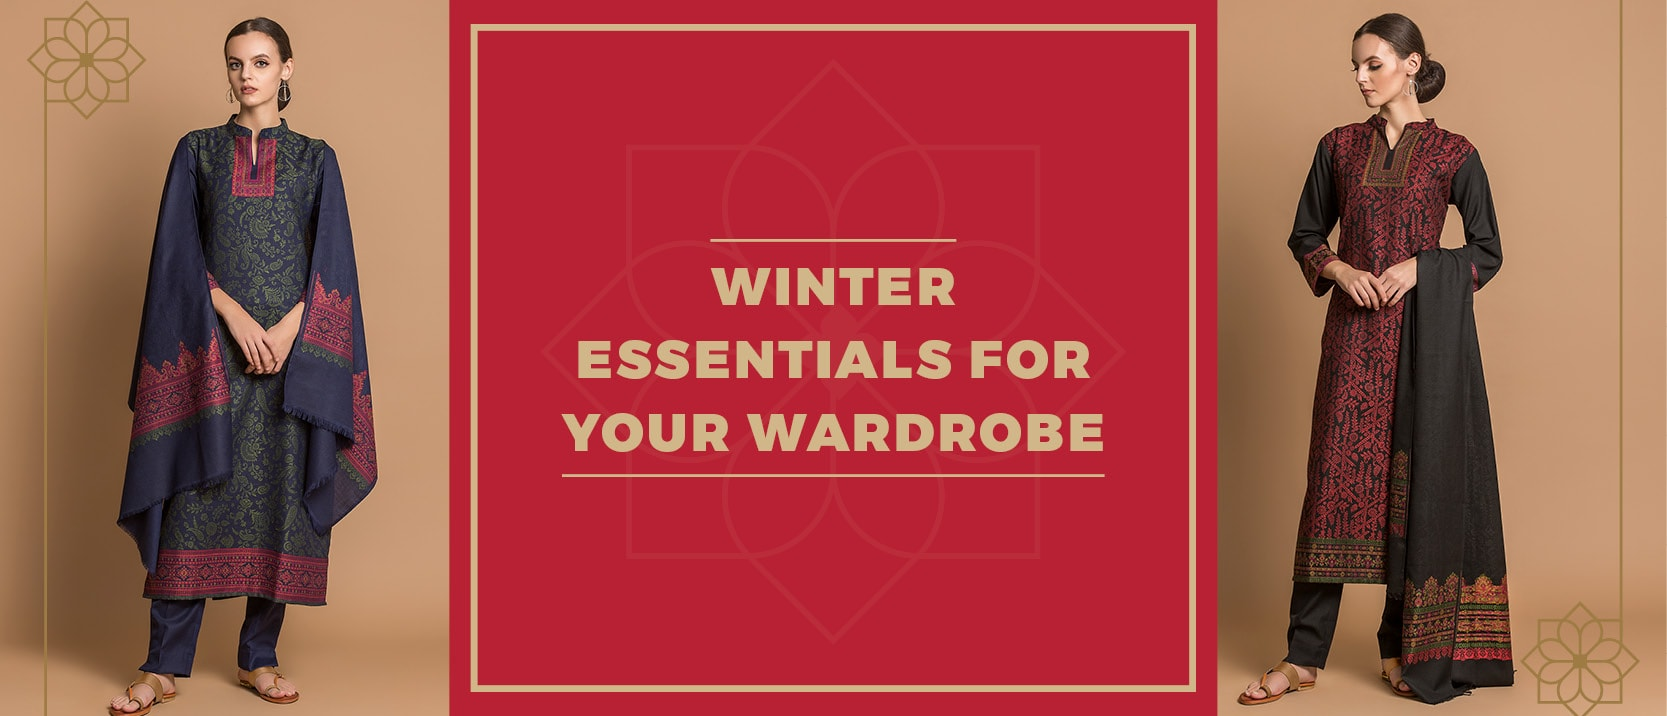 Blog-5-Winter-Essentials-You-Must-Add-to-Your-Wardrobe-Now.jpg